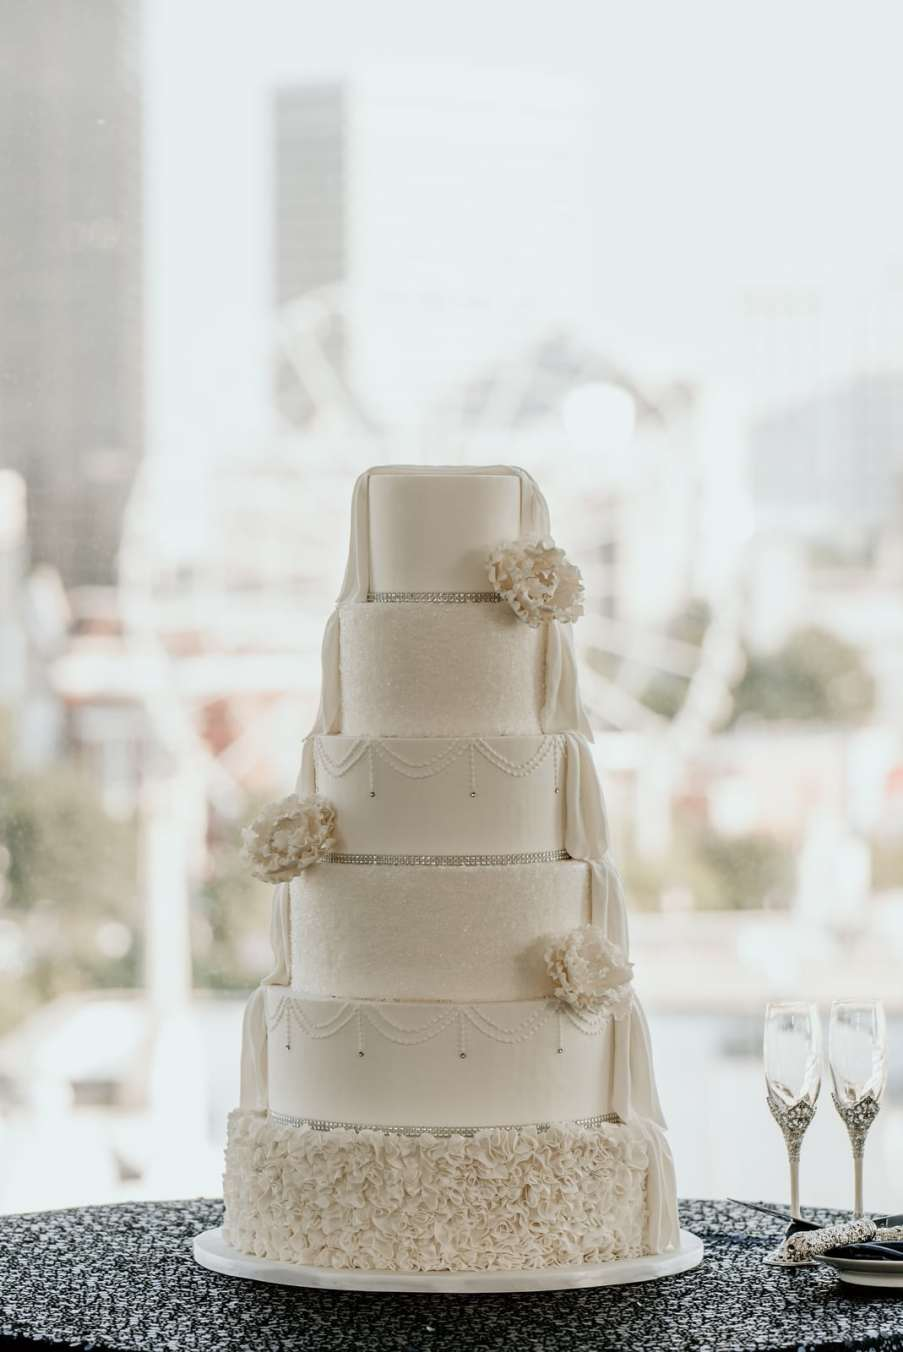 Draped wedding cake with Skyview Atlanta ferris wheel in the background